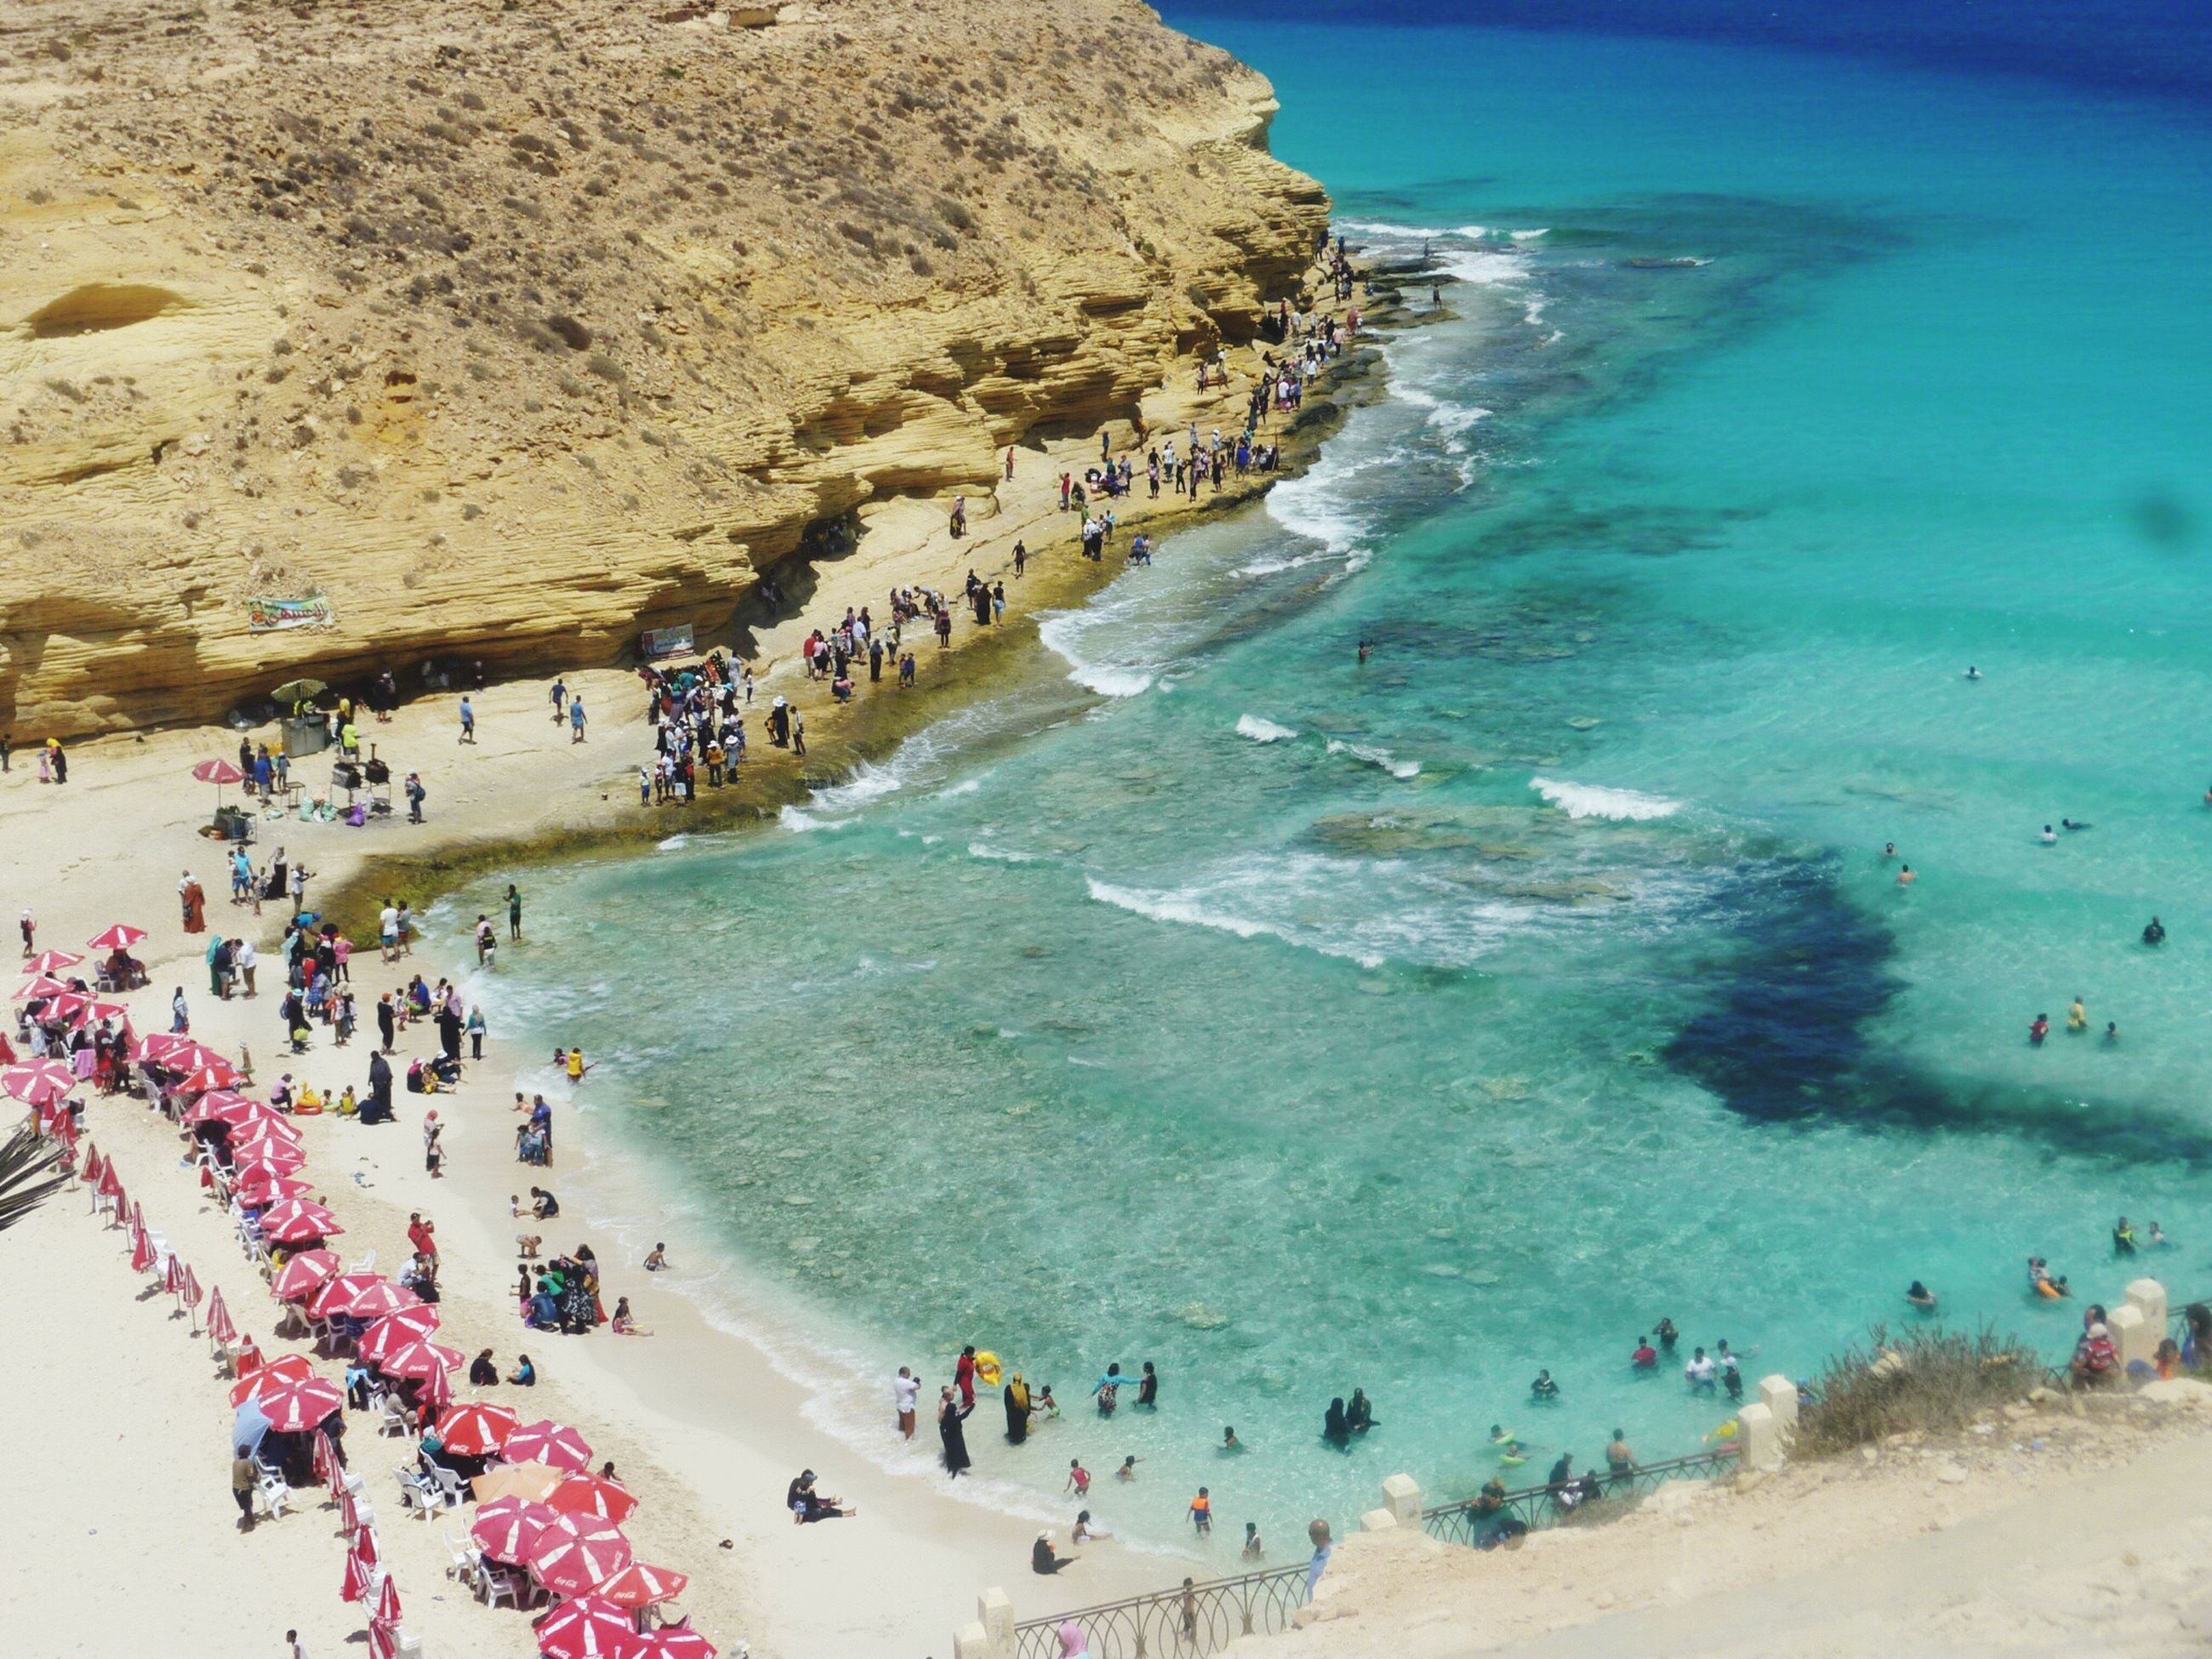 sea, beach, large group of people, water, high angle view, wave, sand, shore, coastline, leisure activity, real people, enjoyment, horizon over water, beauty in nature, outdoors, scenics, fun, day, vacations, nature, sky, men, crowd, people